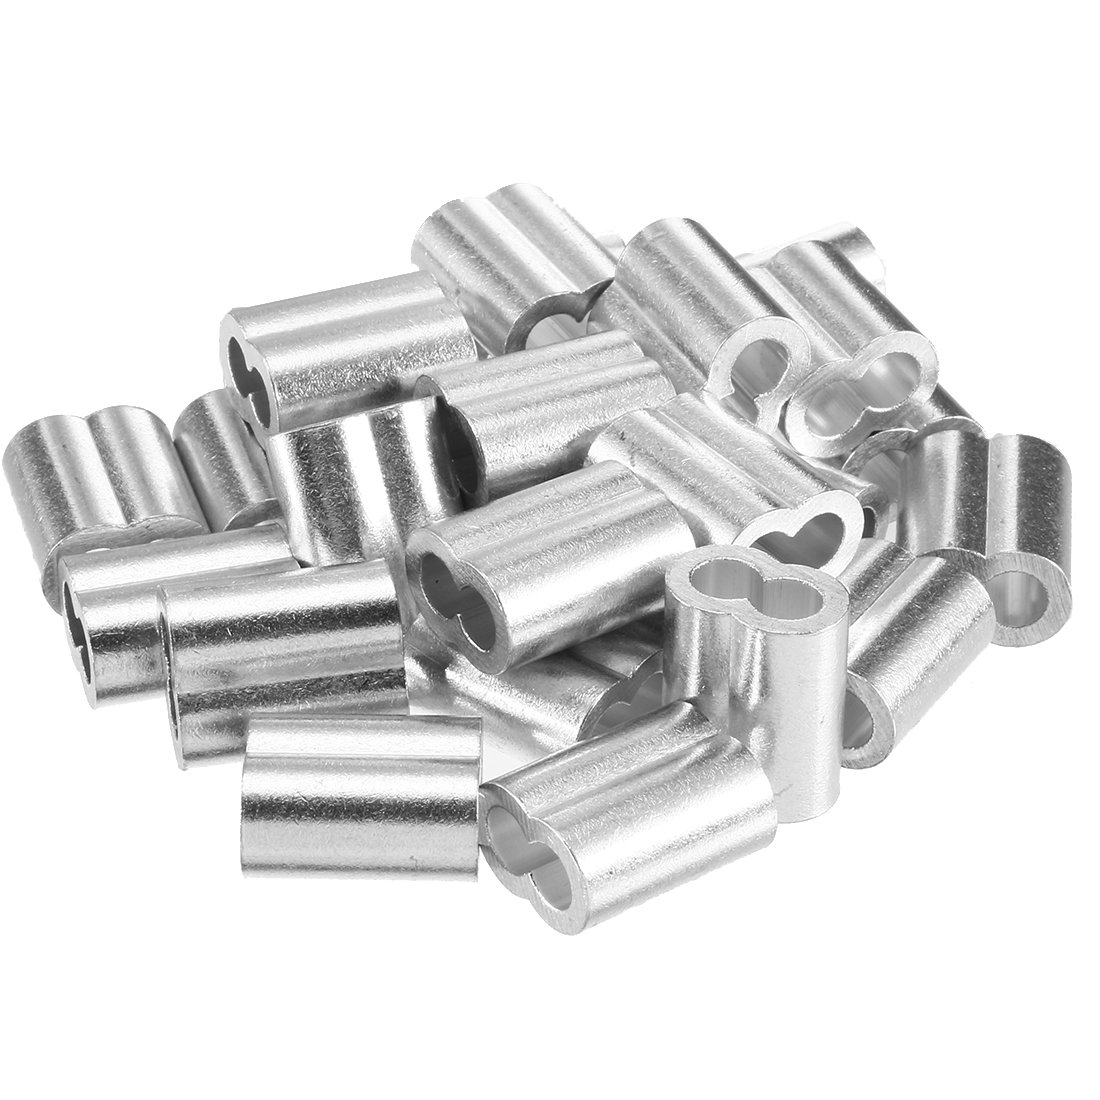 uxcell 0.31 inch (8mm) Diameter Wire Rope Aluminum Sleeves Clip Fittings Cable Crimps 20pcs